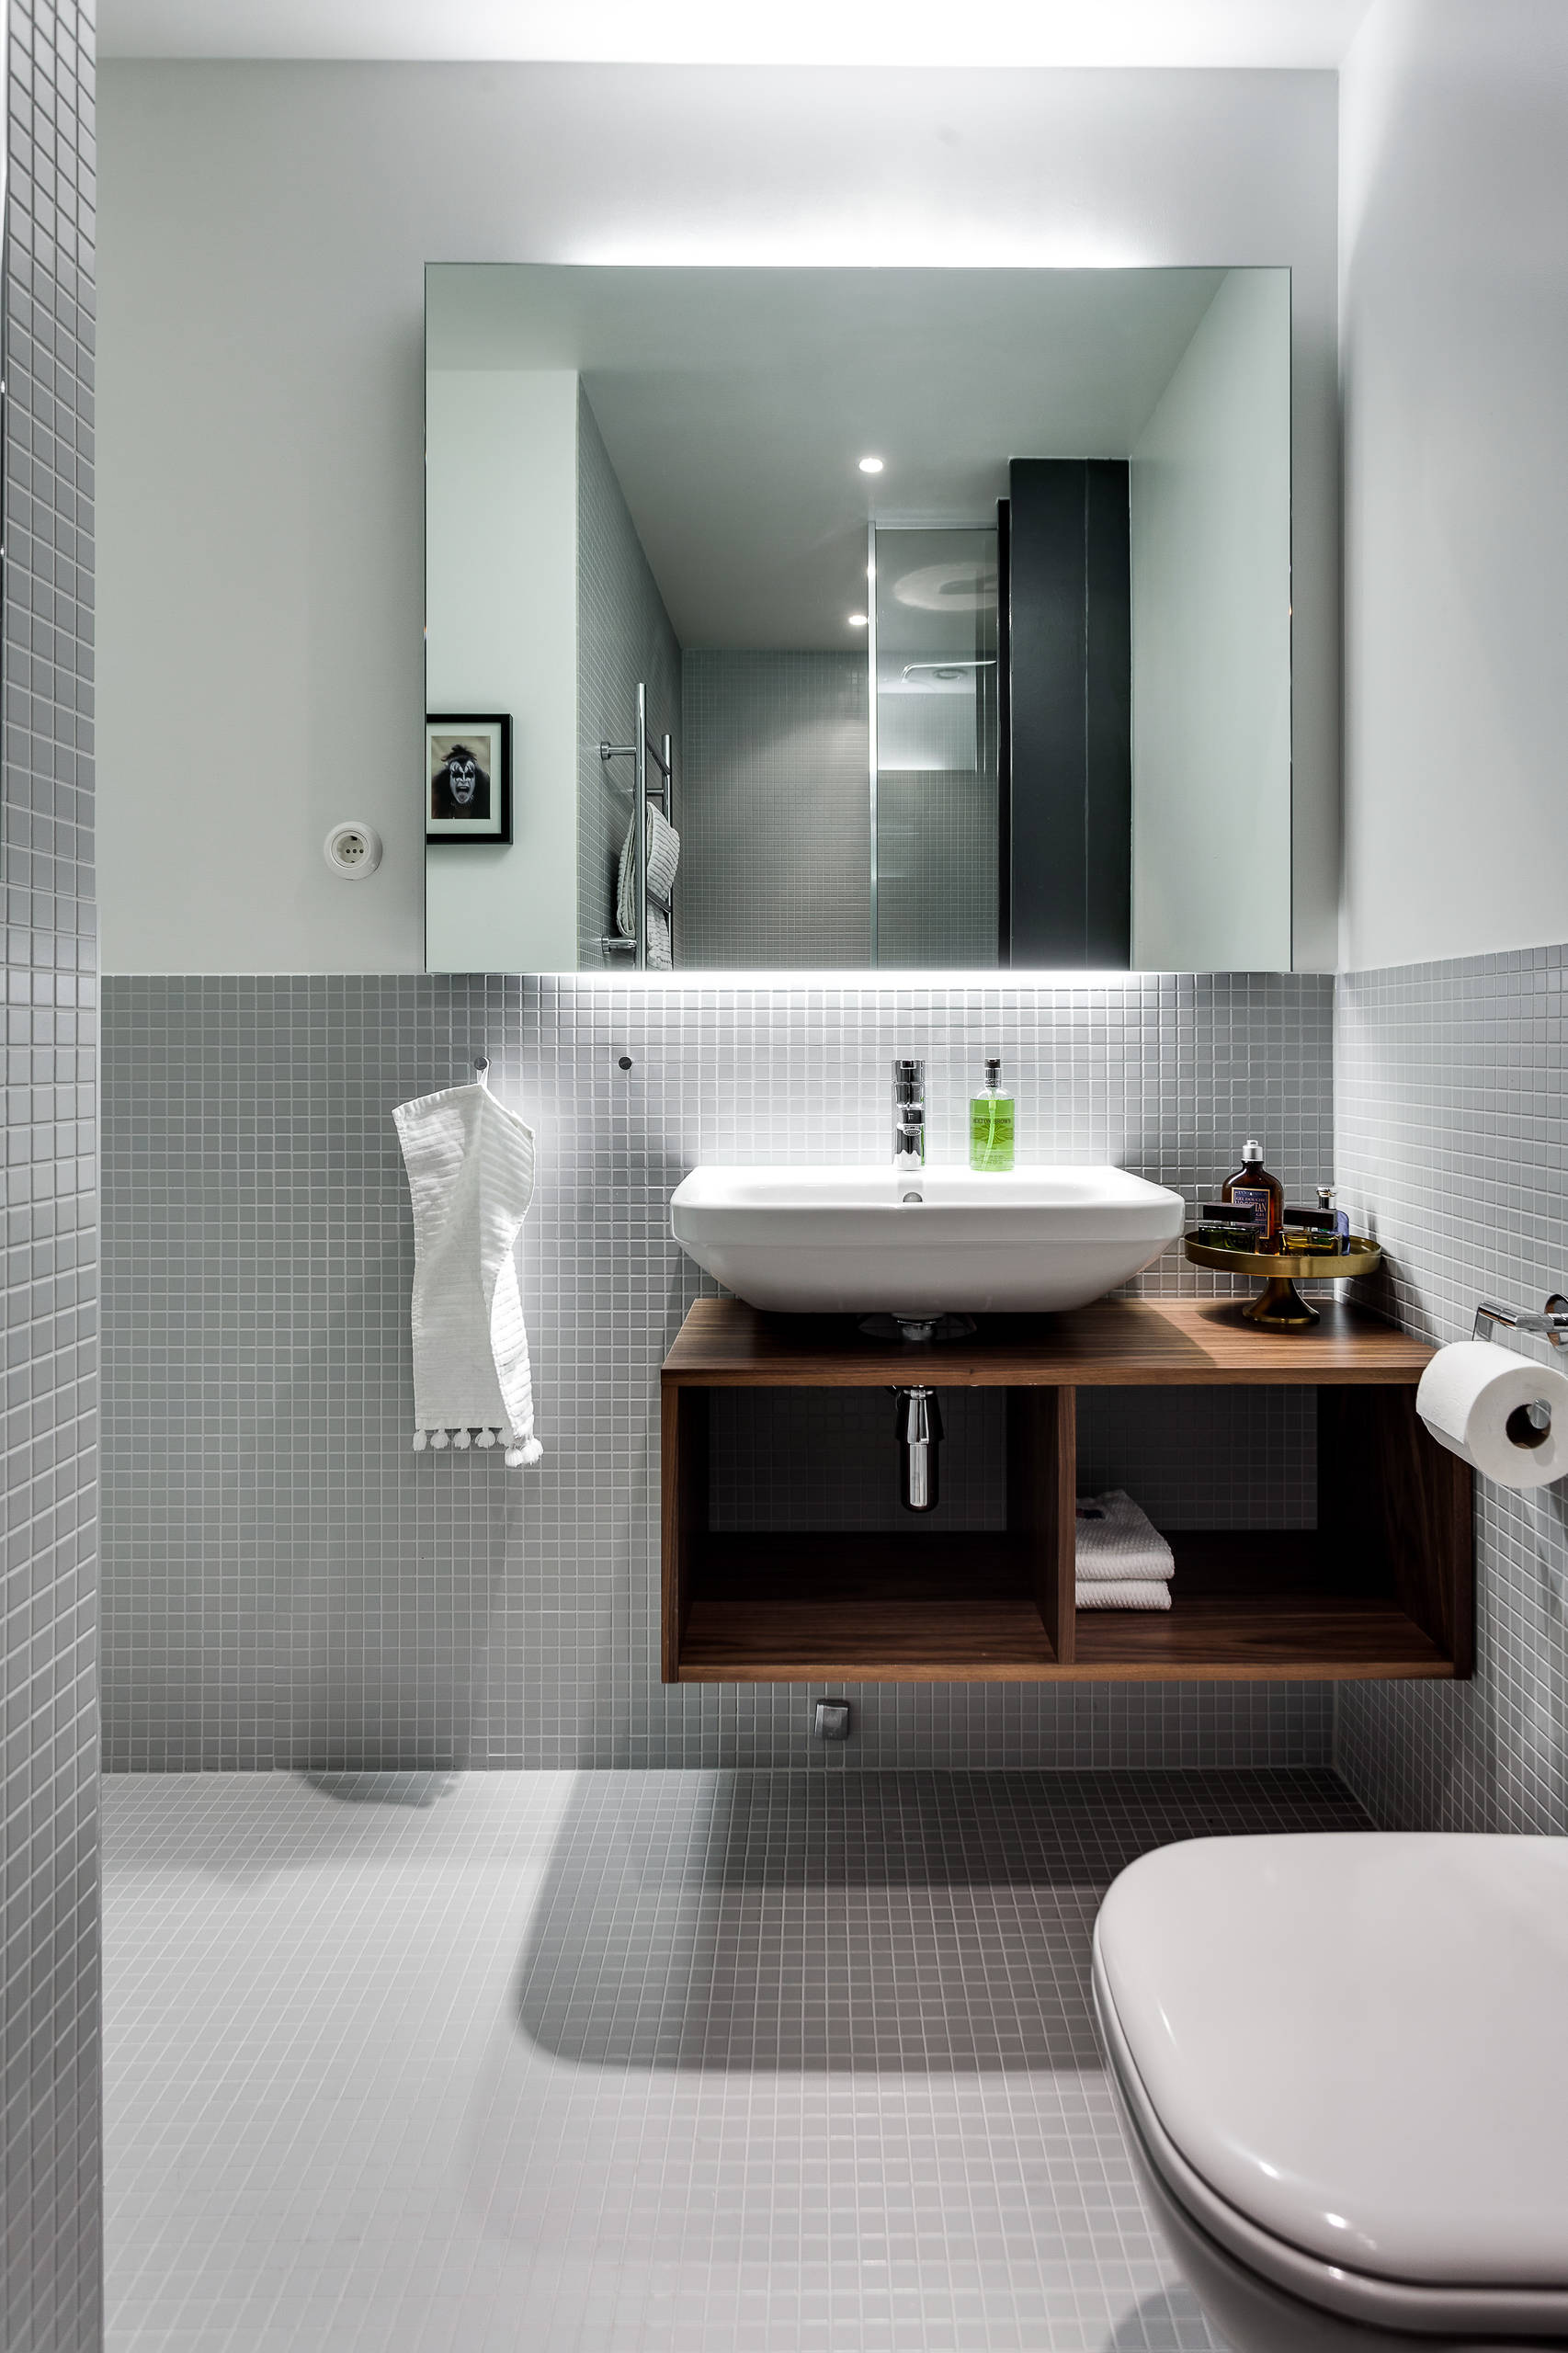 Bathroom Remodel Ideas To Inspire You: 15 Stunning Scandinavian Bathroom Designs You're Going To Like